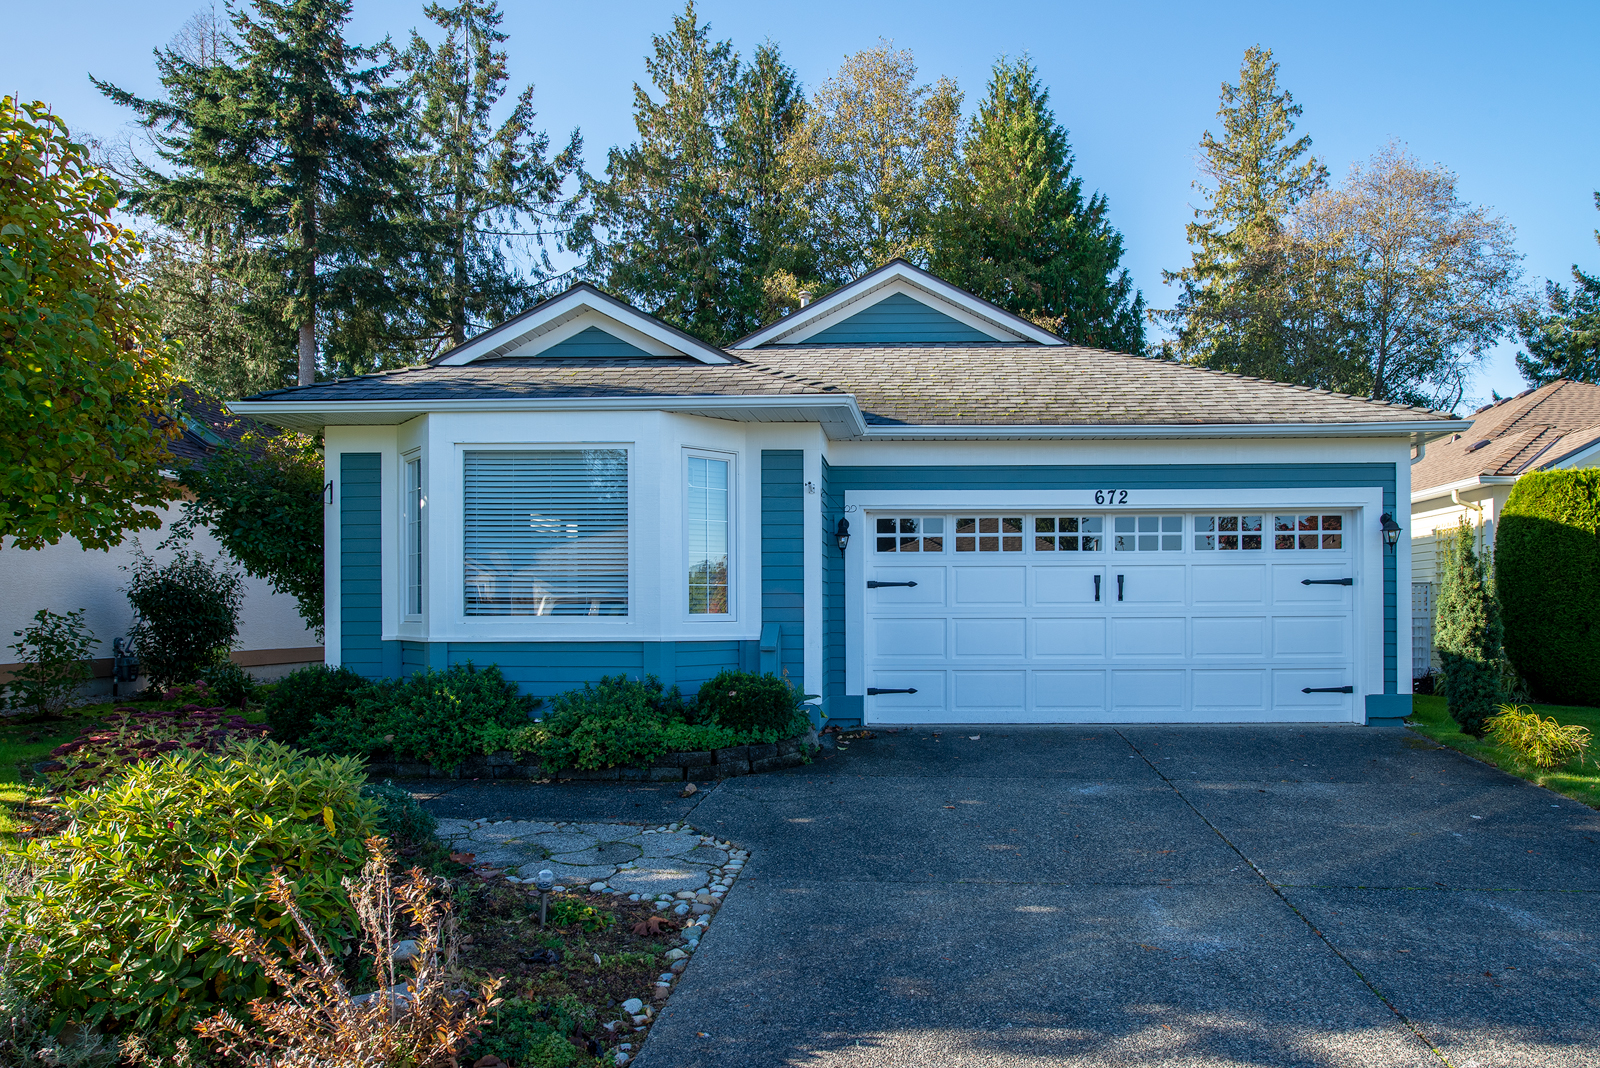 SOLD - #672 Windward Way, Qualicum Beach, British Columbia